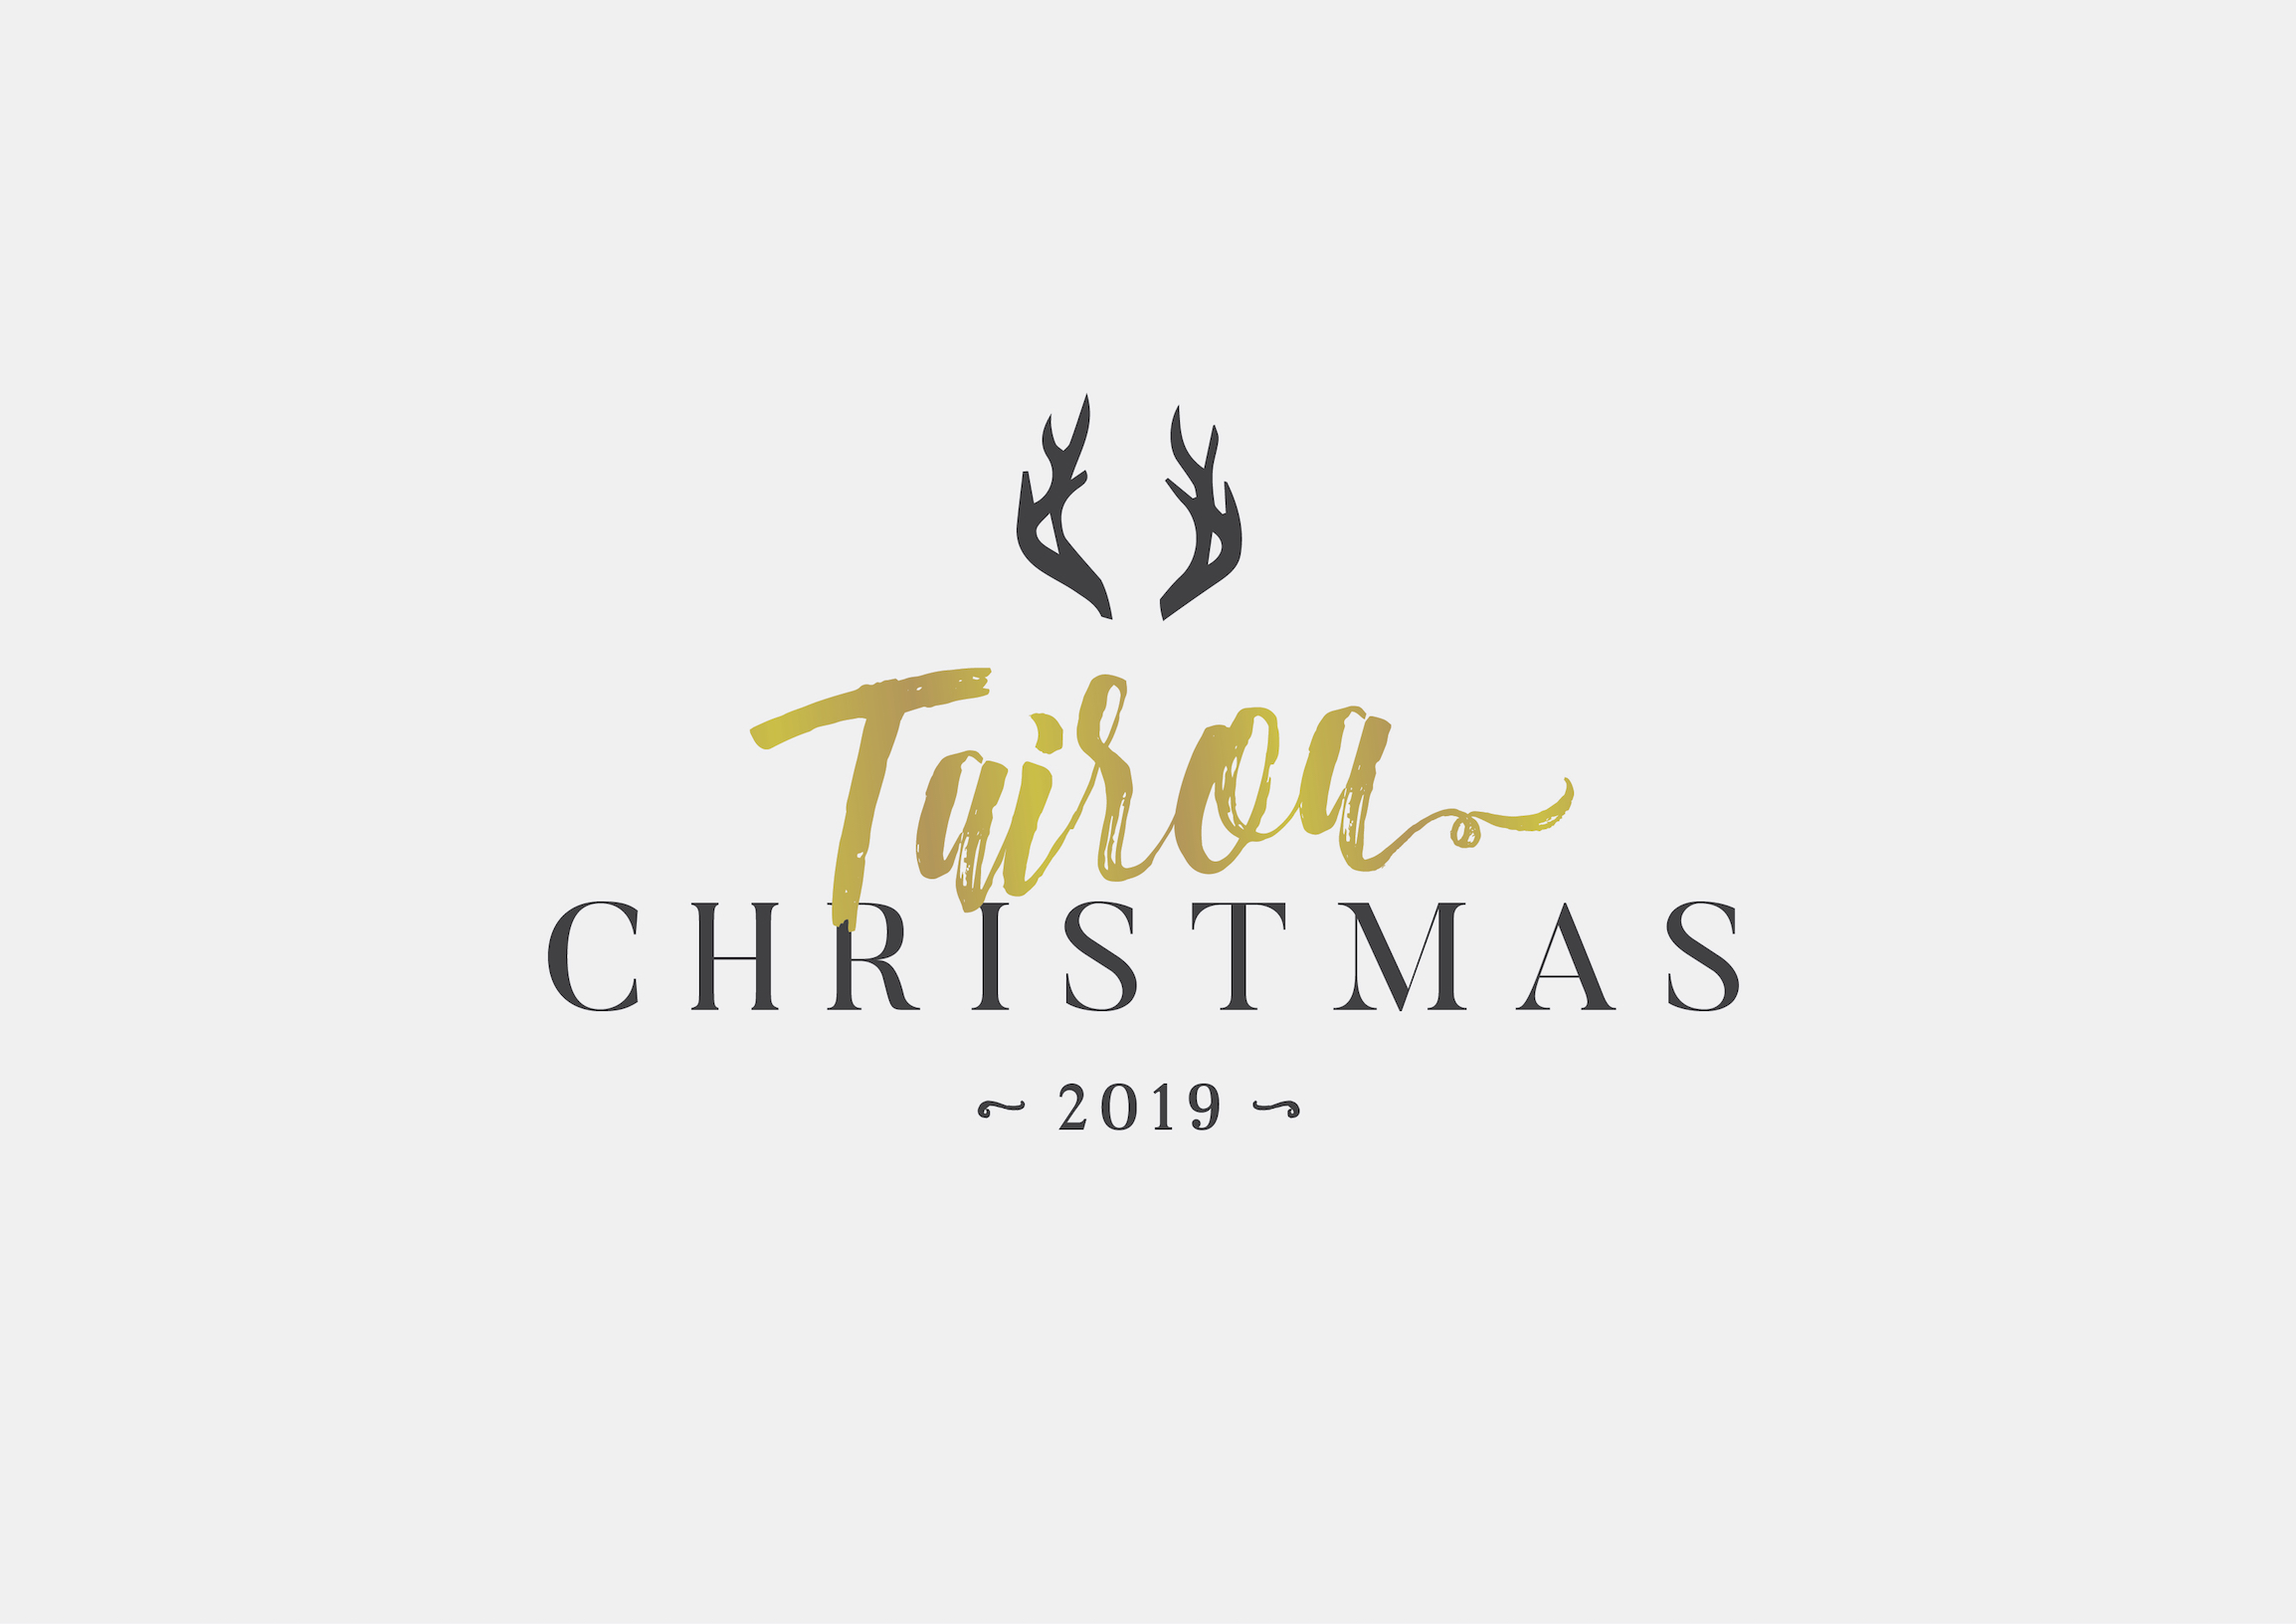 Christmas Graphics 2019.Tairoa Christmas 2019 Tairoa Lodge